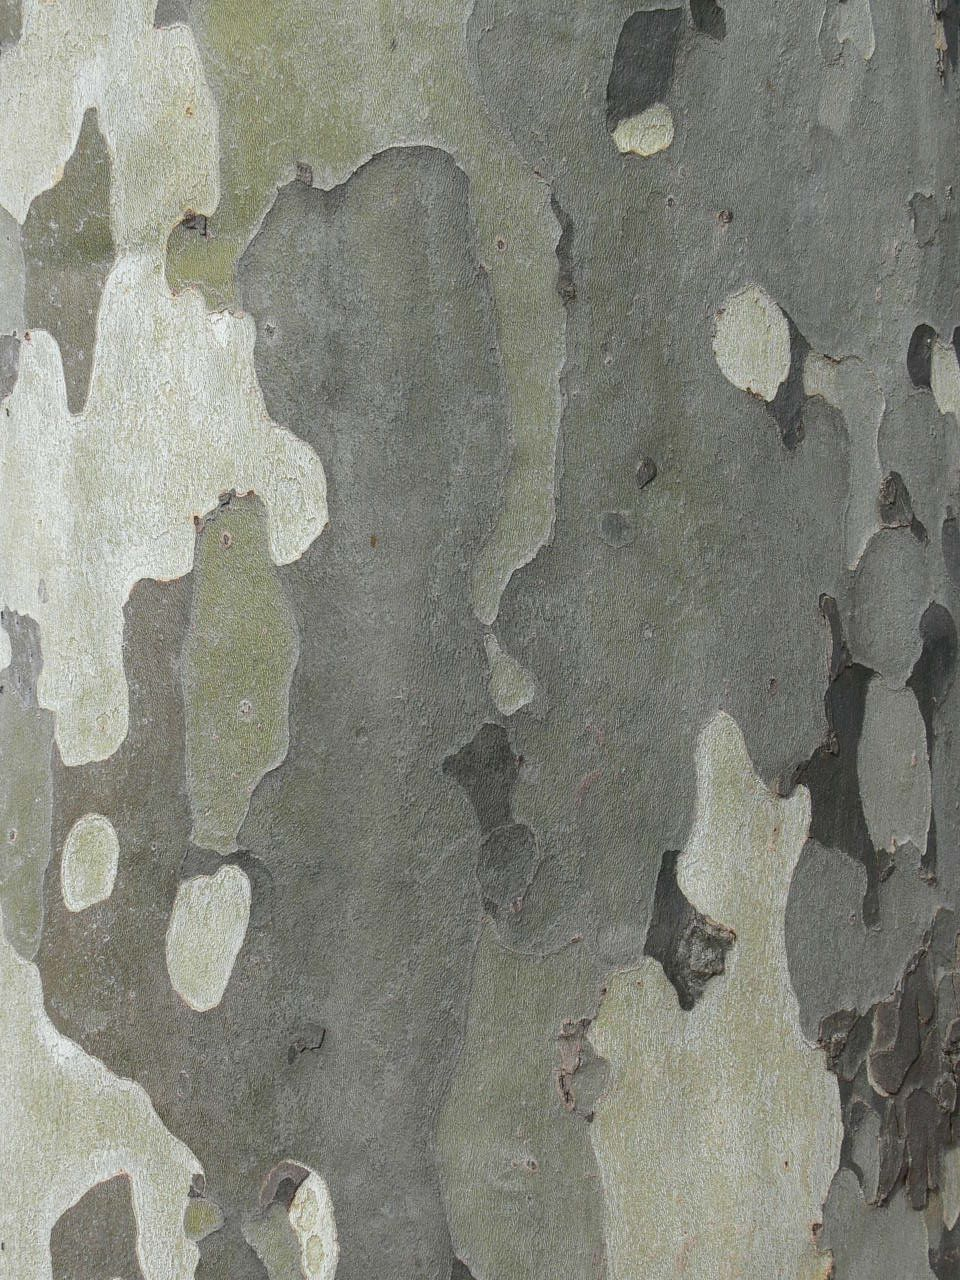 Gumtree Bark Pattern Free Image Patterns In Nature Textures